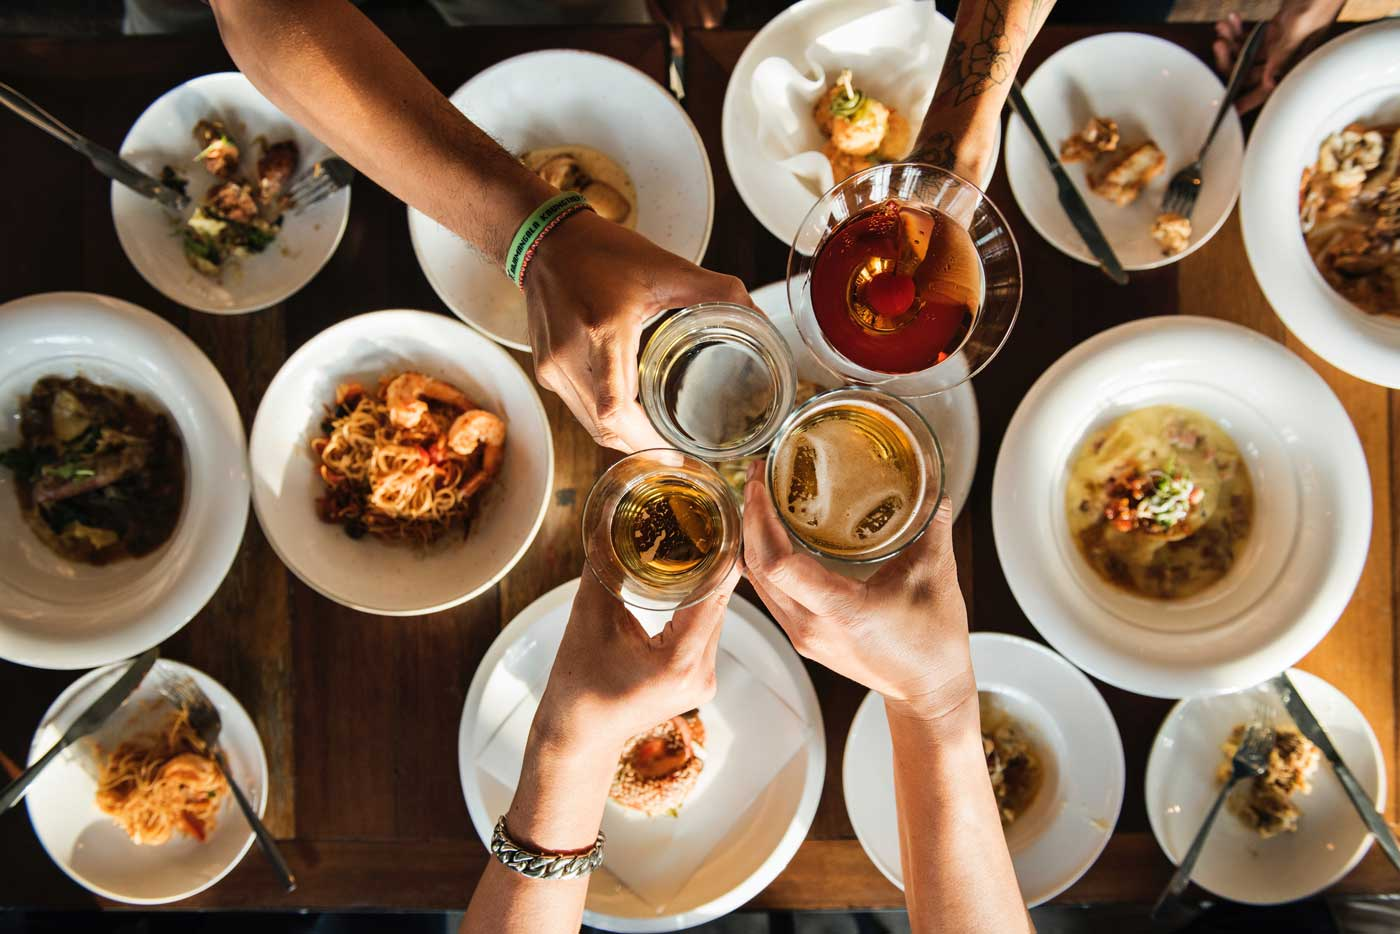 How To: Determine the Average Food Cost for a Simple Event